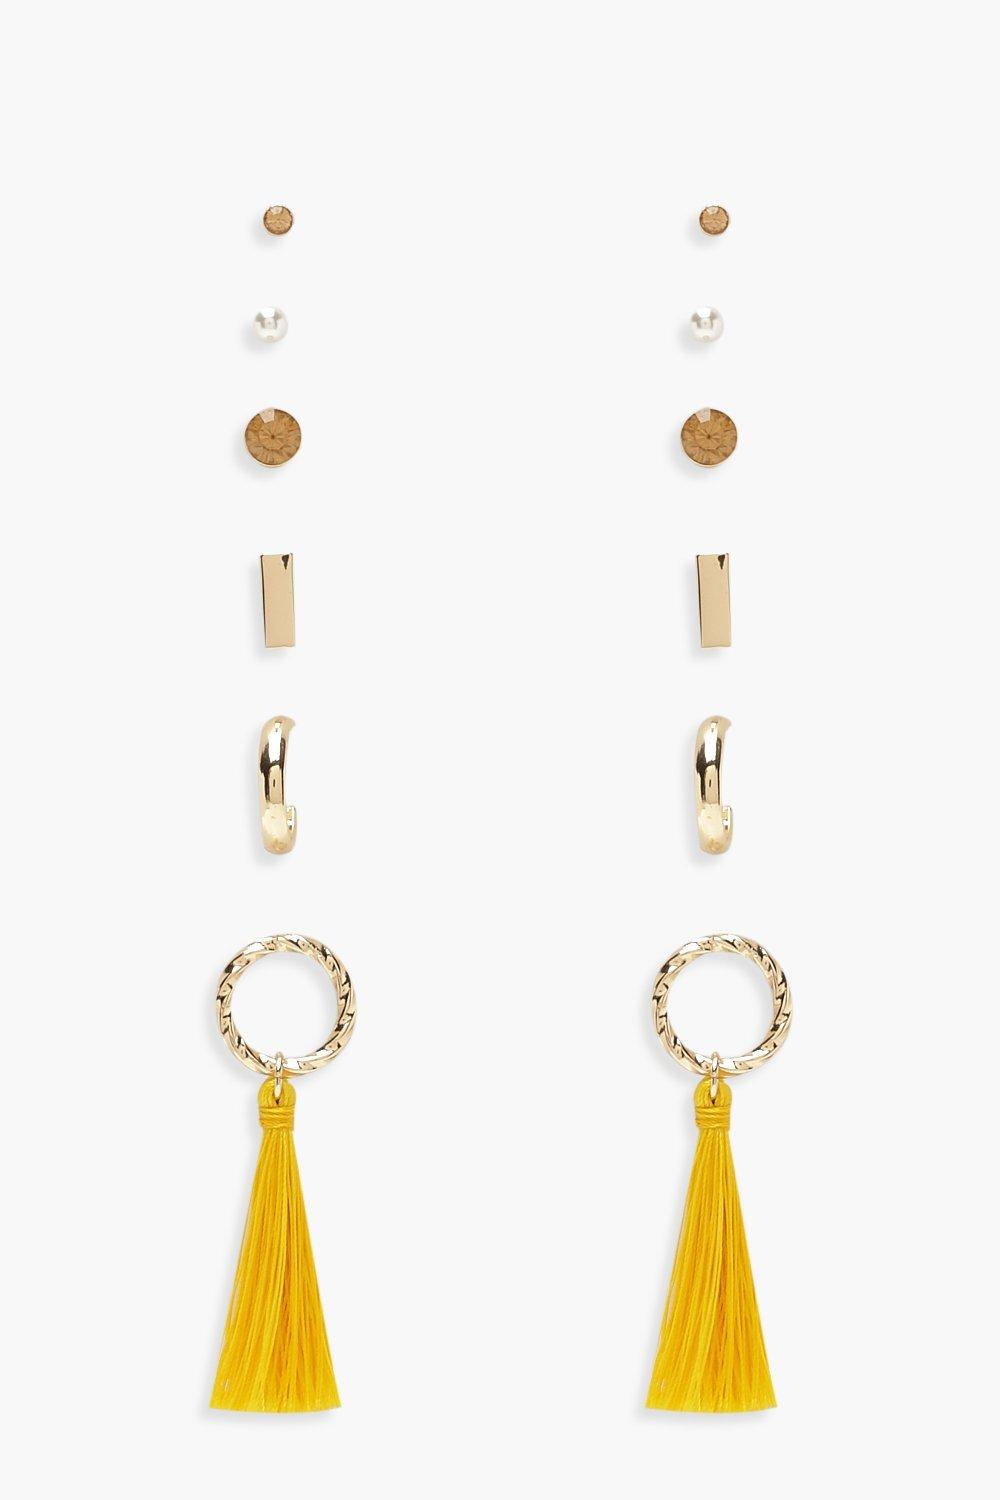 aa8055a7d9f Boohoo Stud & Circle Tassel Earring Pack in Yellow - Lyst